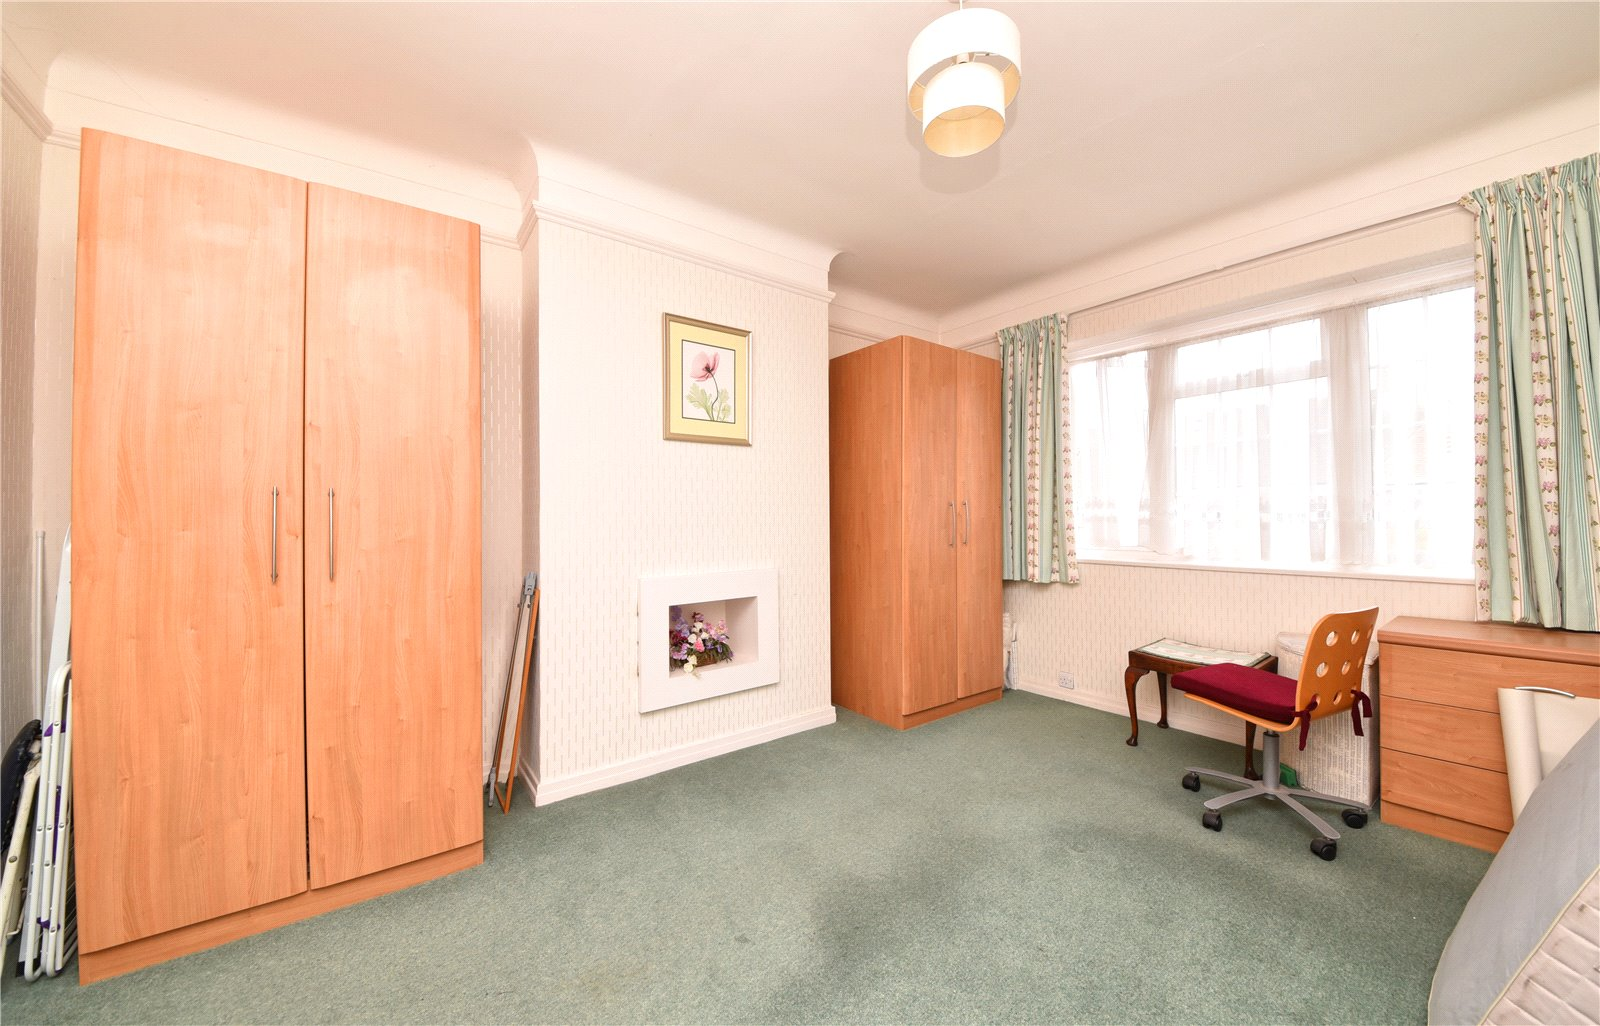 3 bed house for sale in London, N12 9ND 8